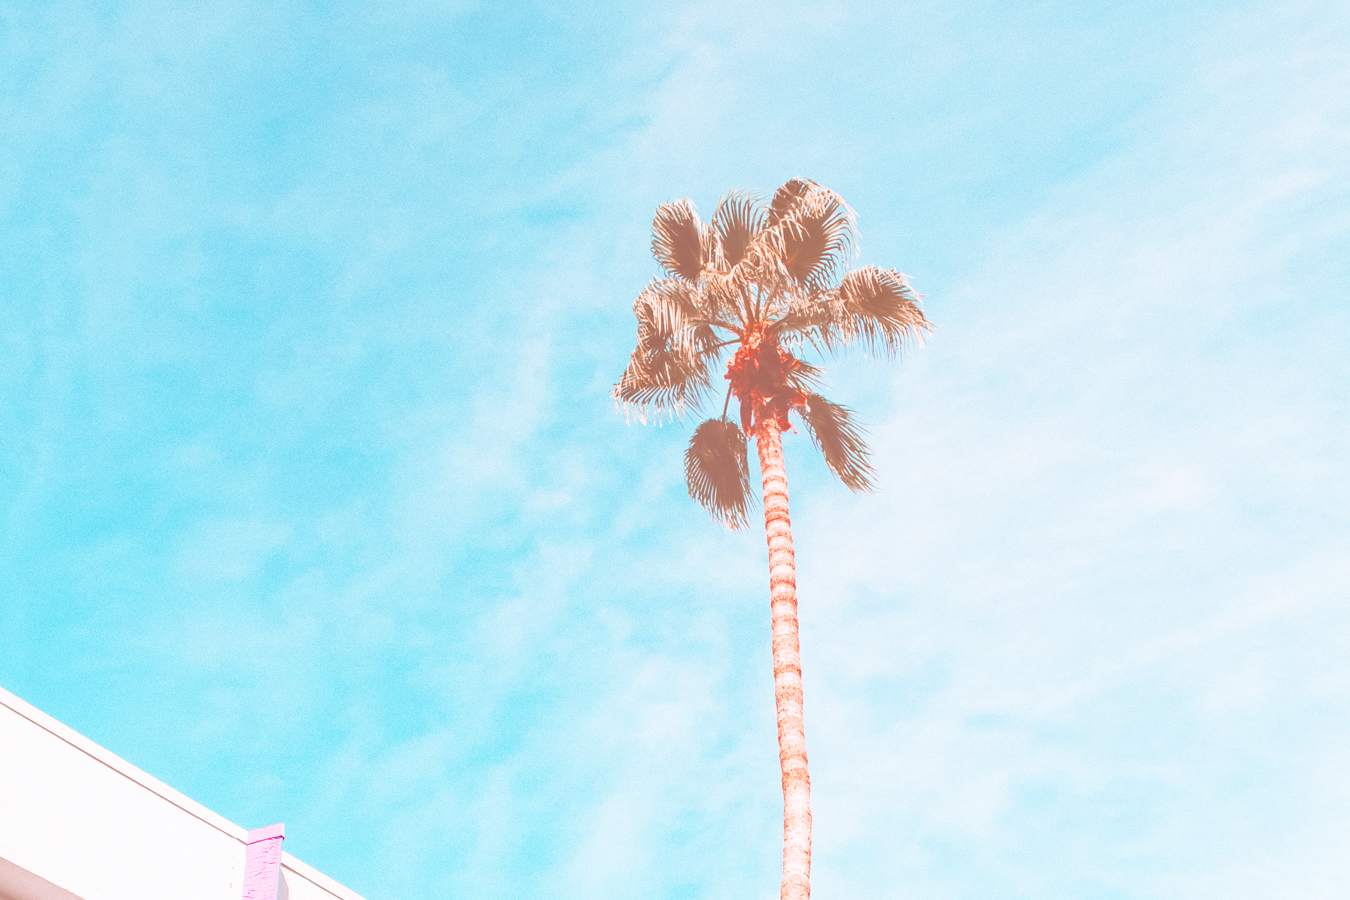 Instagrammable palm tree at Saguaro Palm Springs